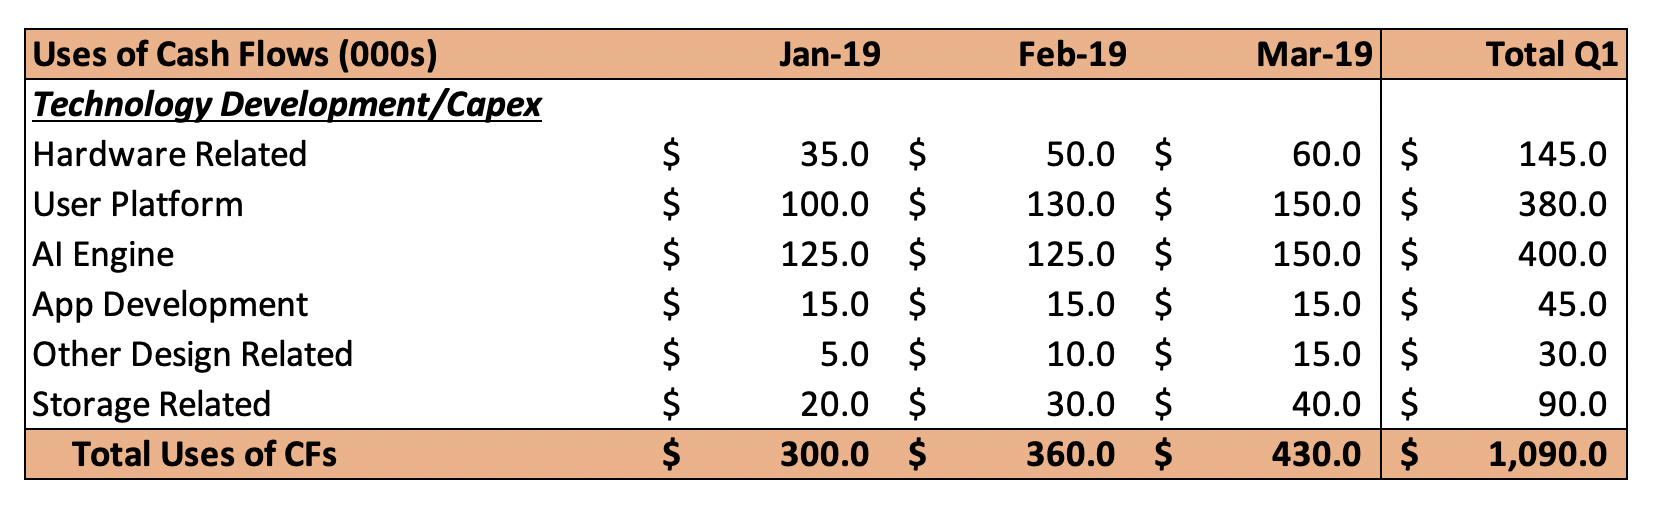 Uses of cash flows.